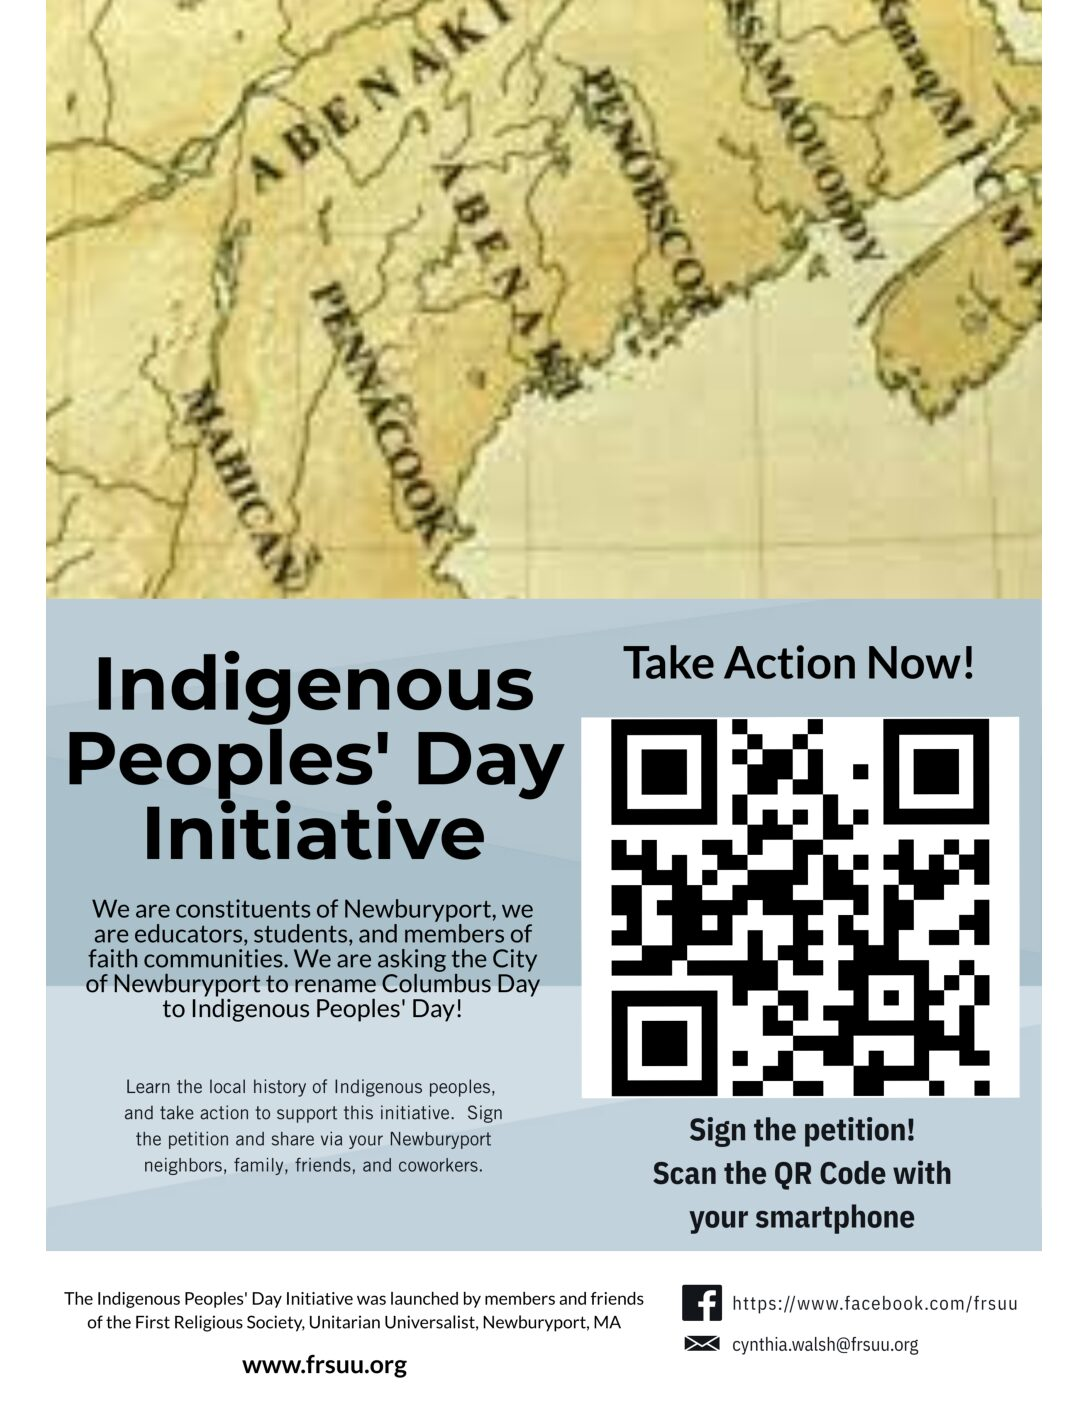 FRS Indigenous Peoples' Day Initiative